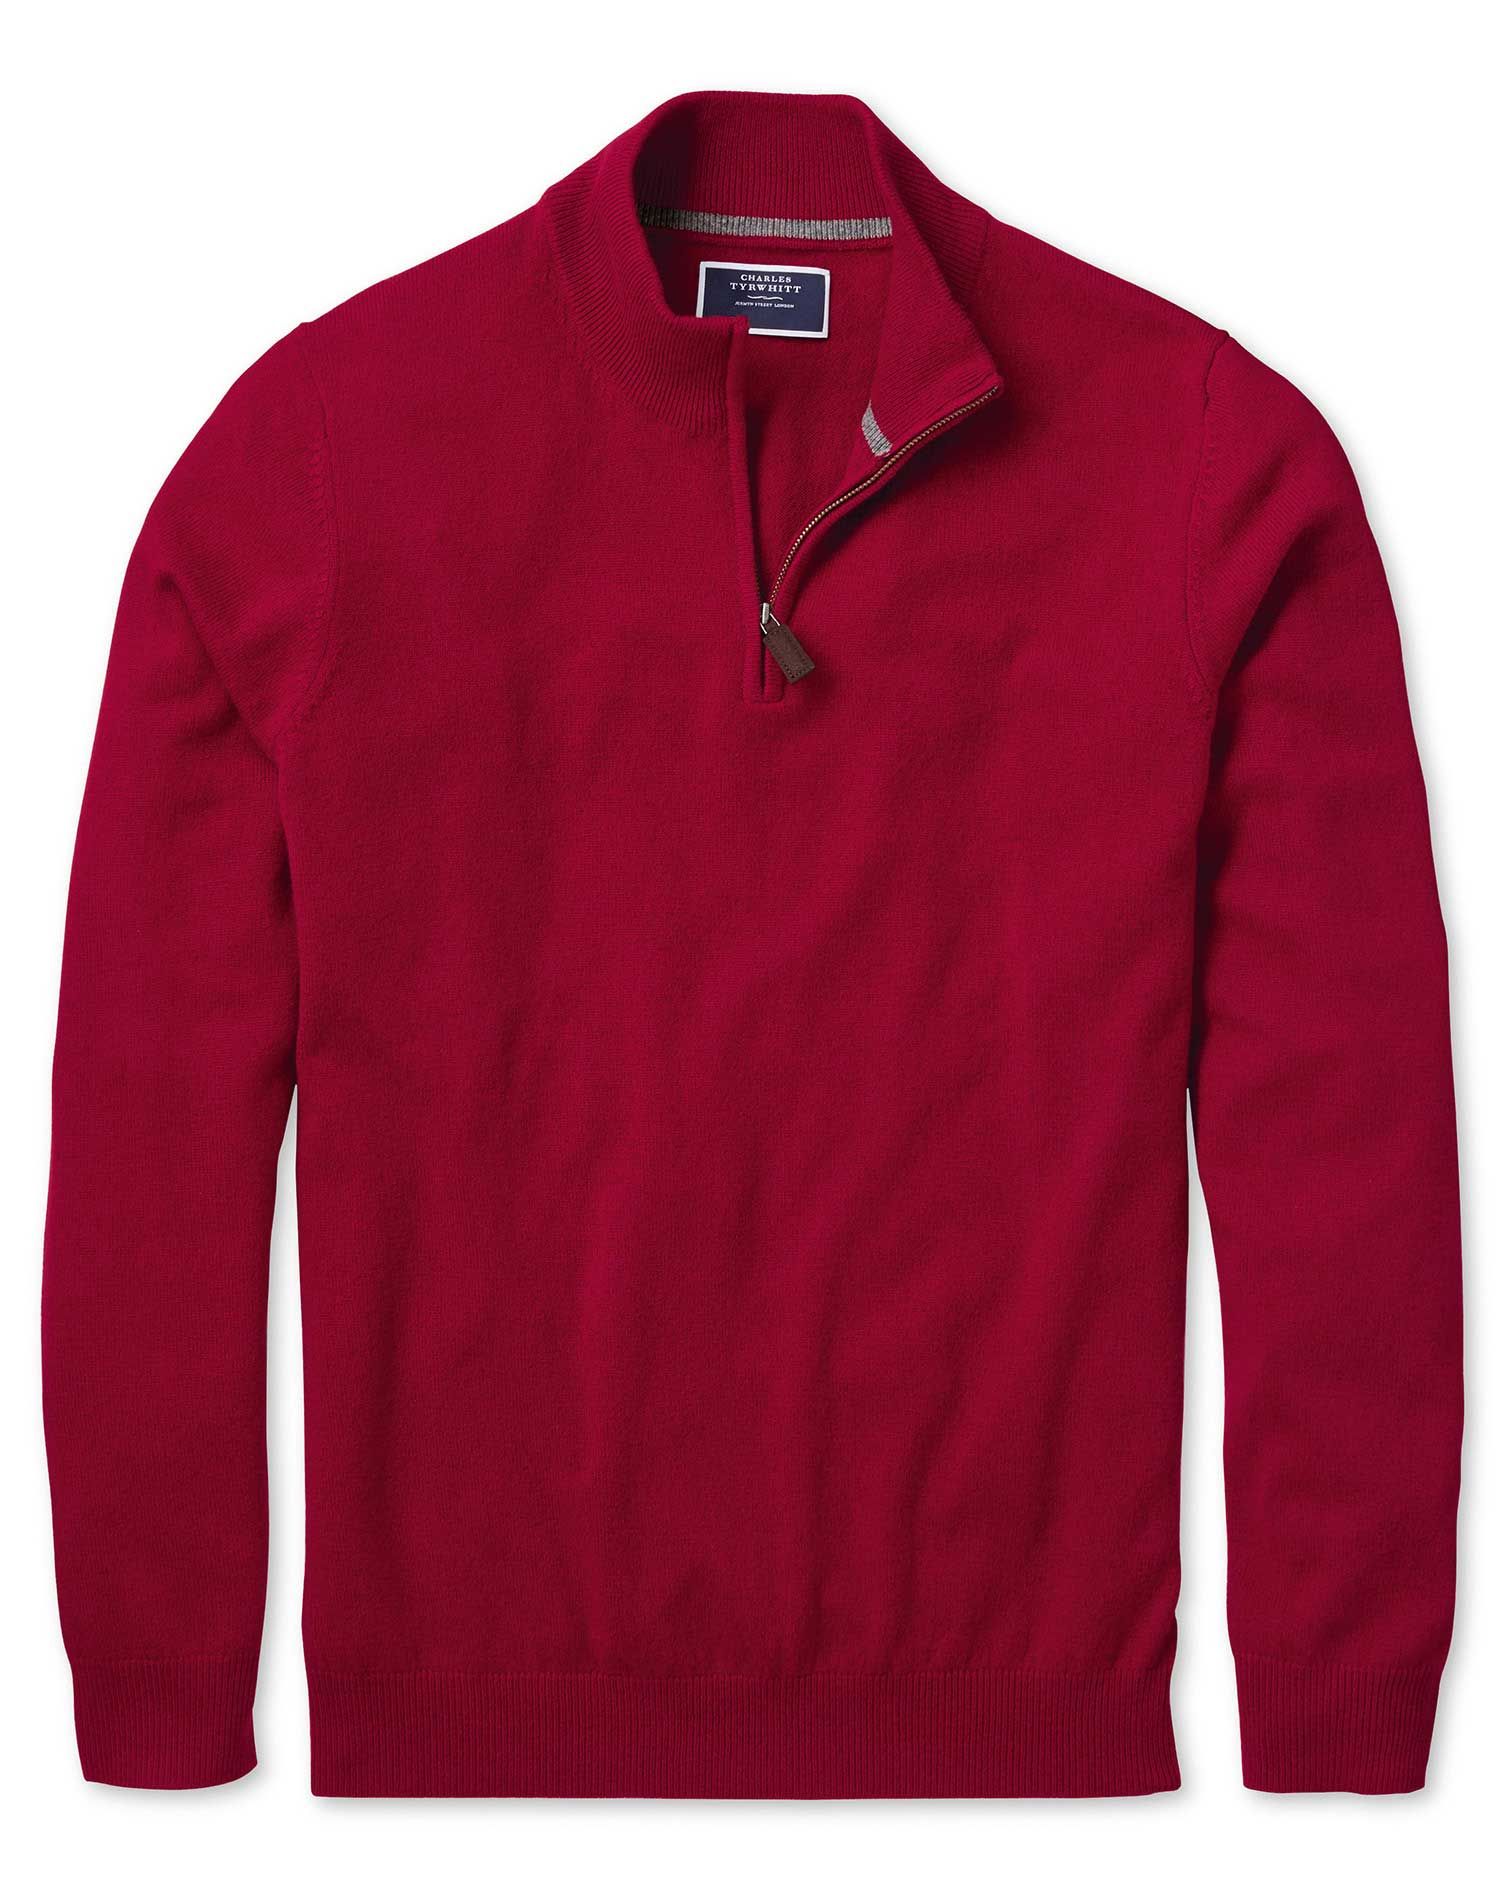 Red Zip Neck Cashmere Jumper Size Large by Charles Tyrwhitt